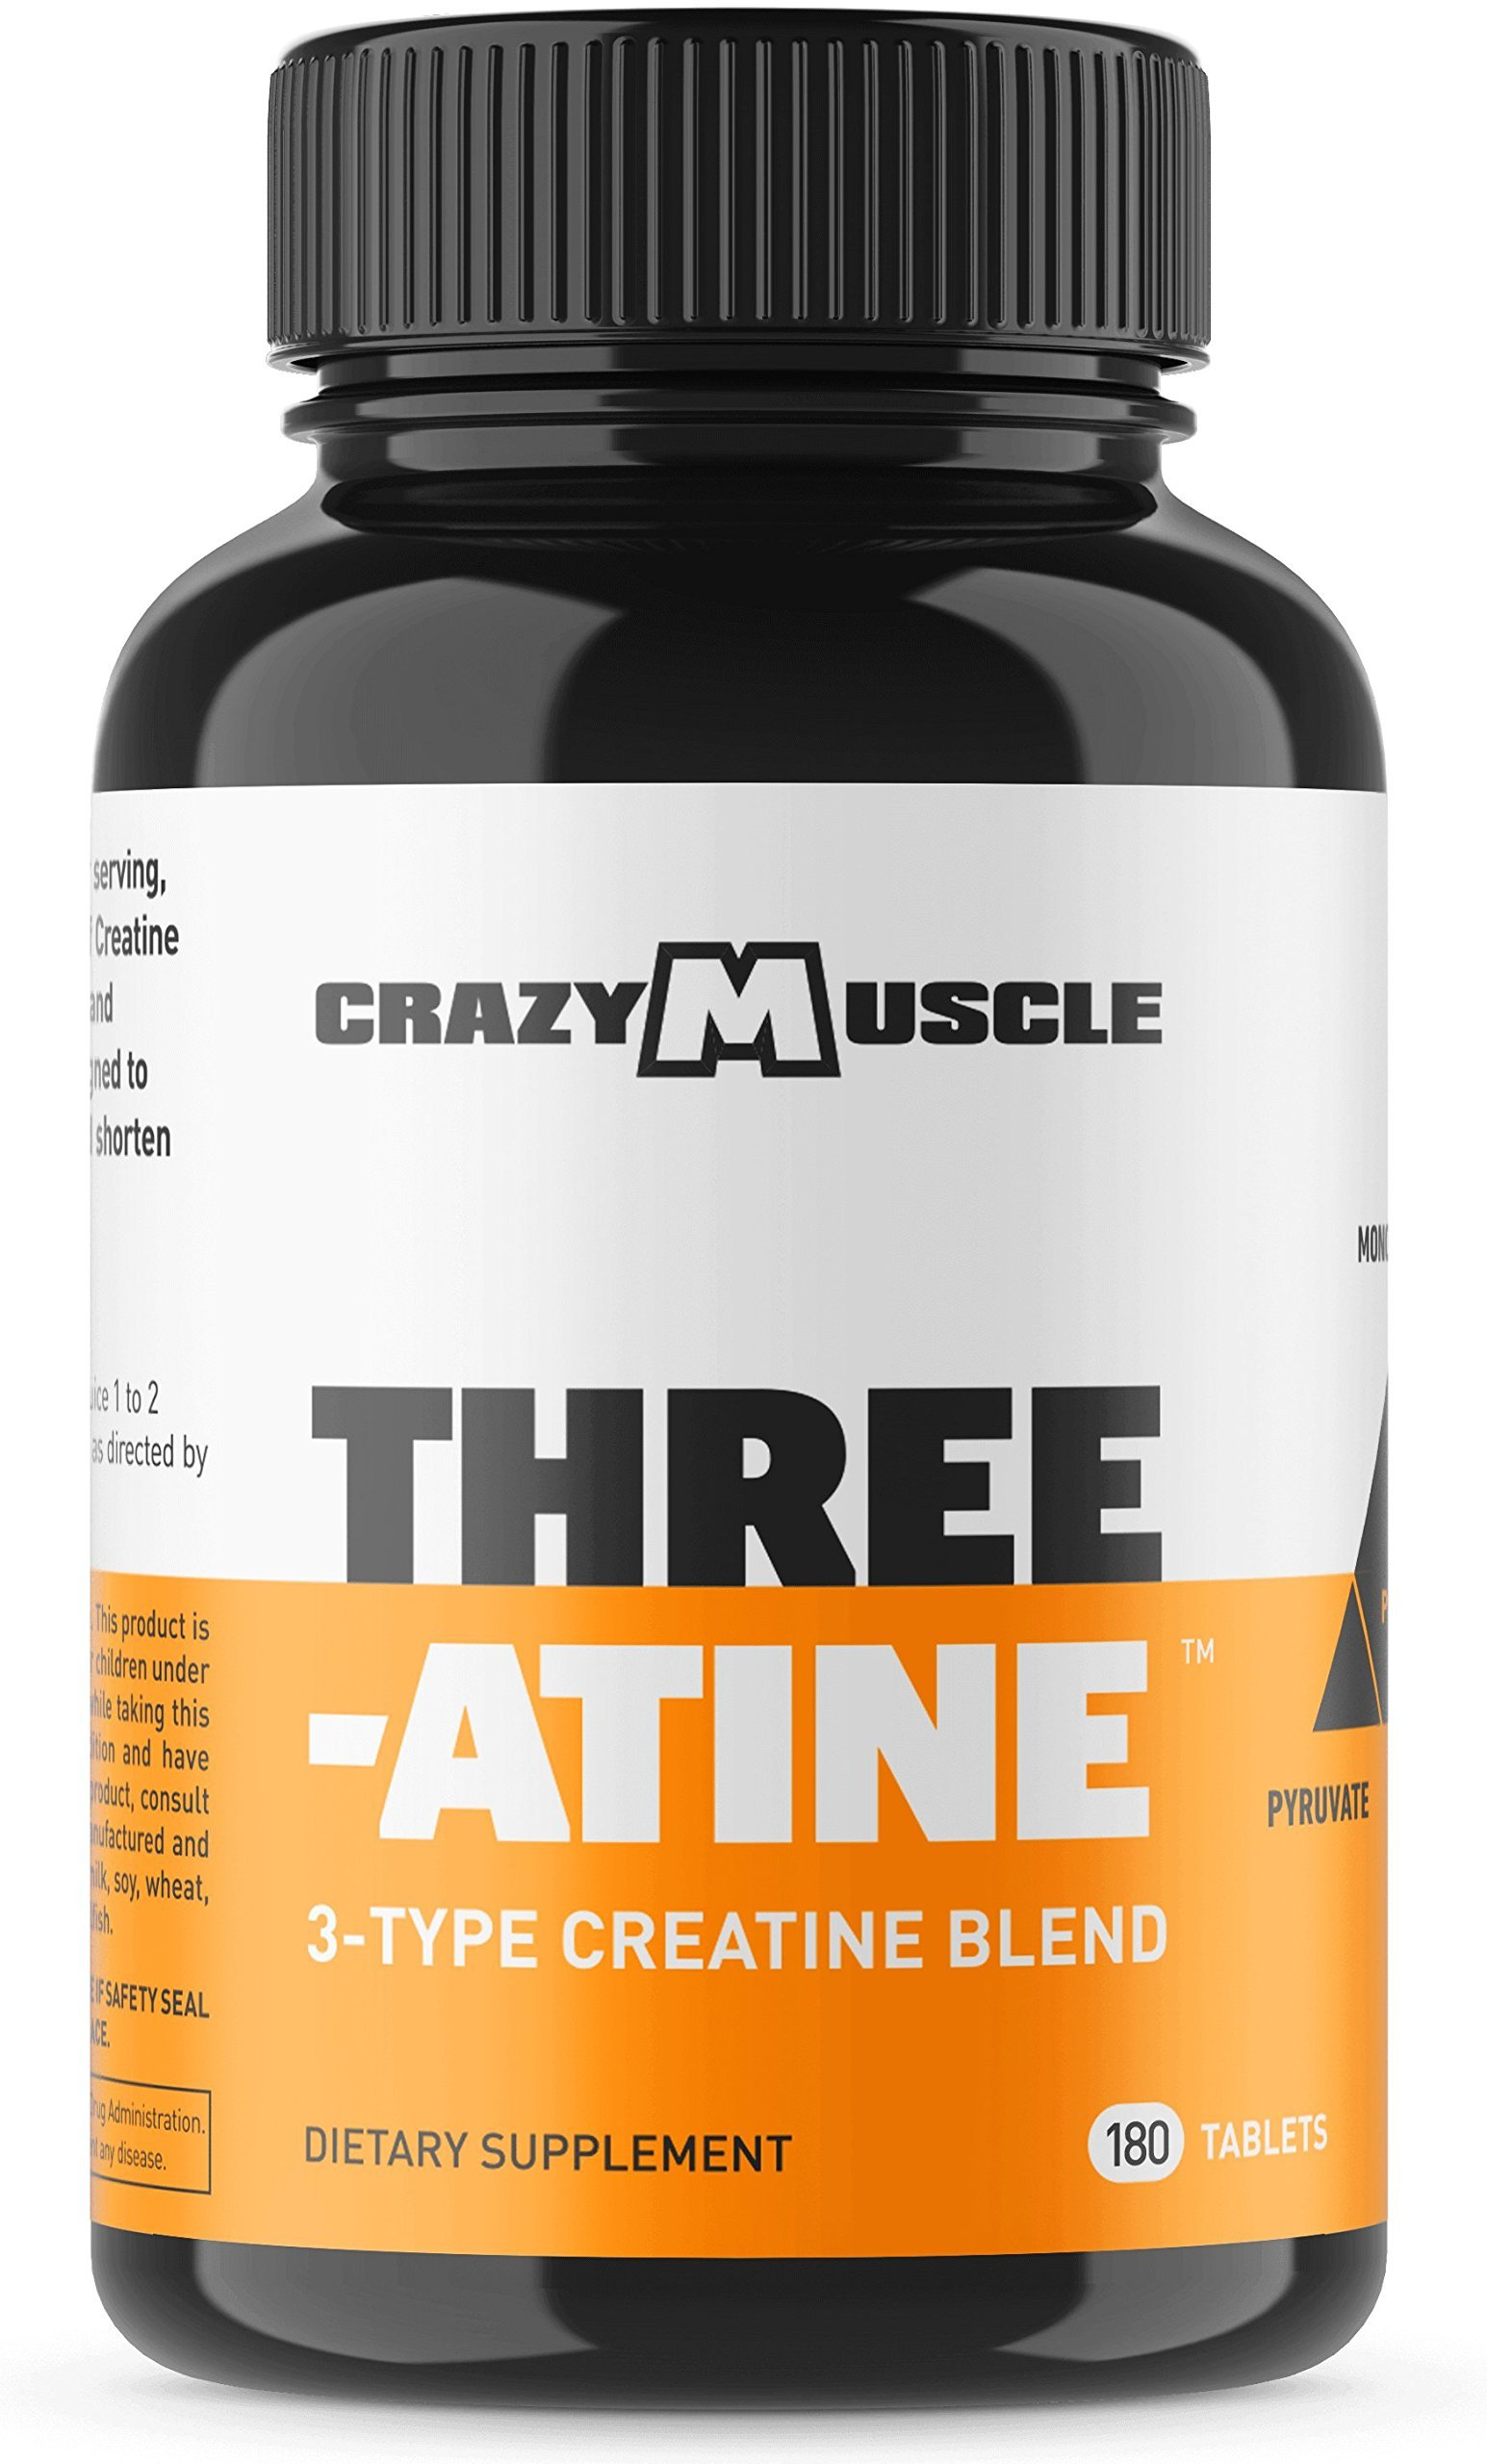 Creatine Monohydrate Pills (2 Month Supply) 5,000mg Per Serving - 180 Capsules - Muscle Gain Supplement with Over 5g of Monohydrate, Pyruvate + AKG - Optimum Strength Creatine Tablets